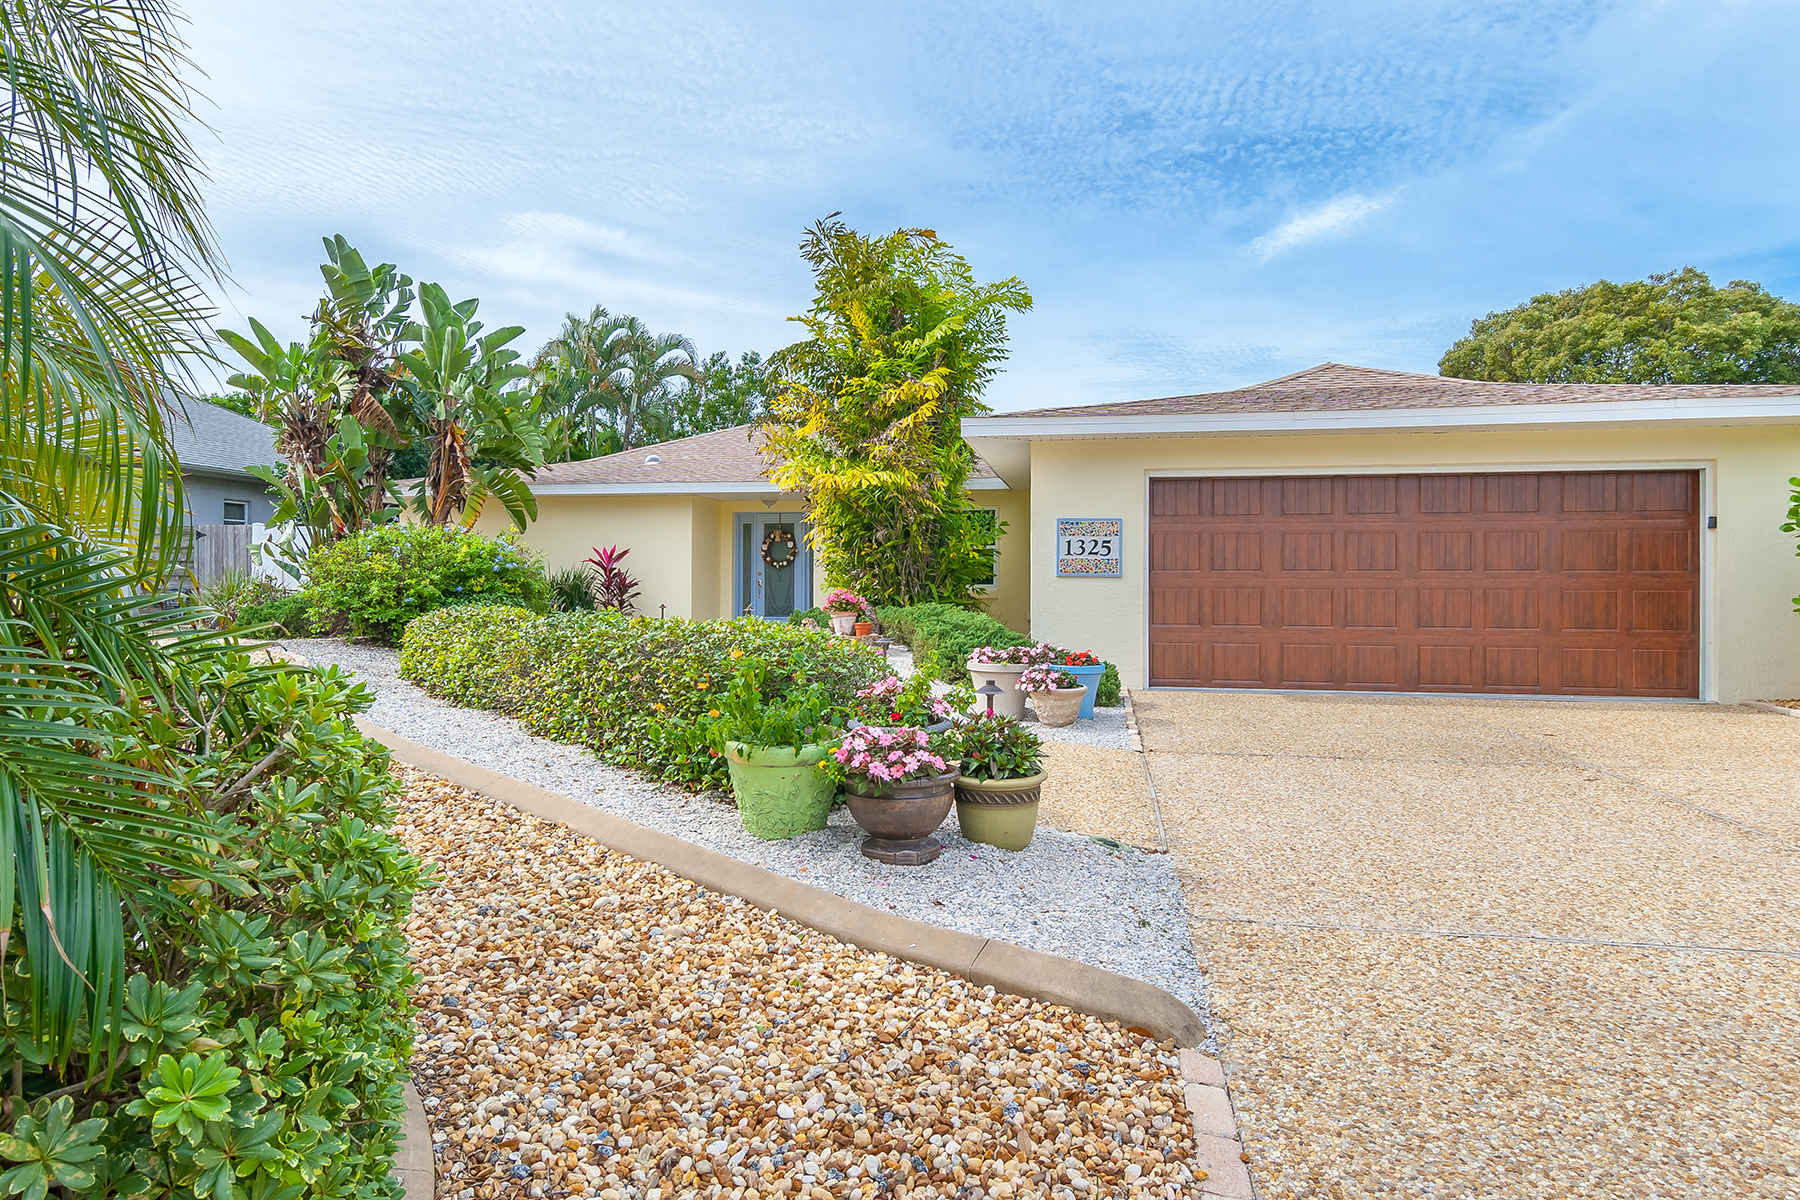 Villa per Vendita alle ore PINEBROOK SOUTH 1325 Pine Needle Rd Venice, Florida 34285 Stati Uniti